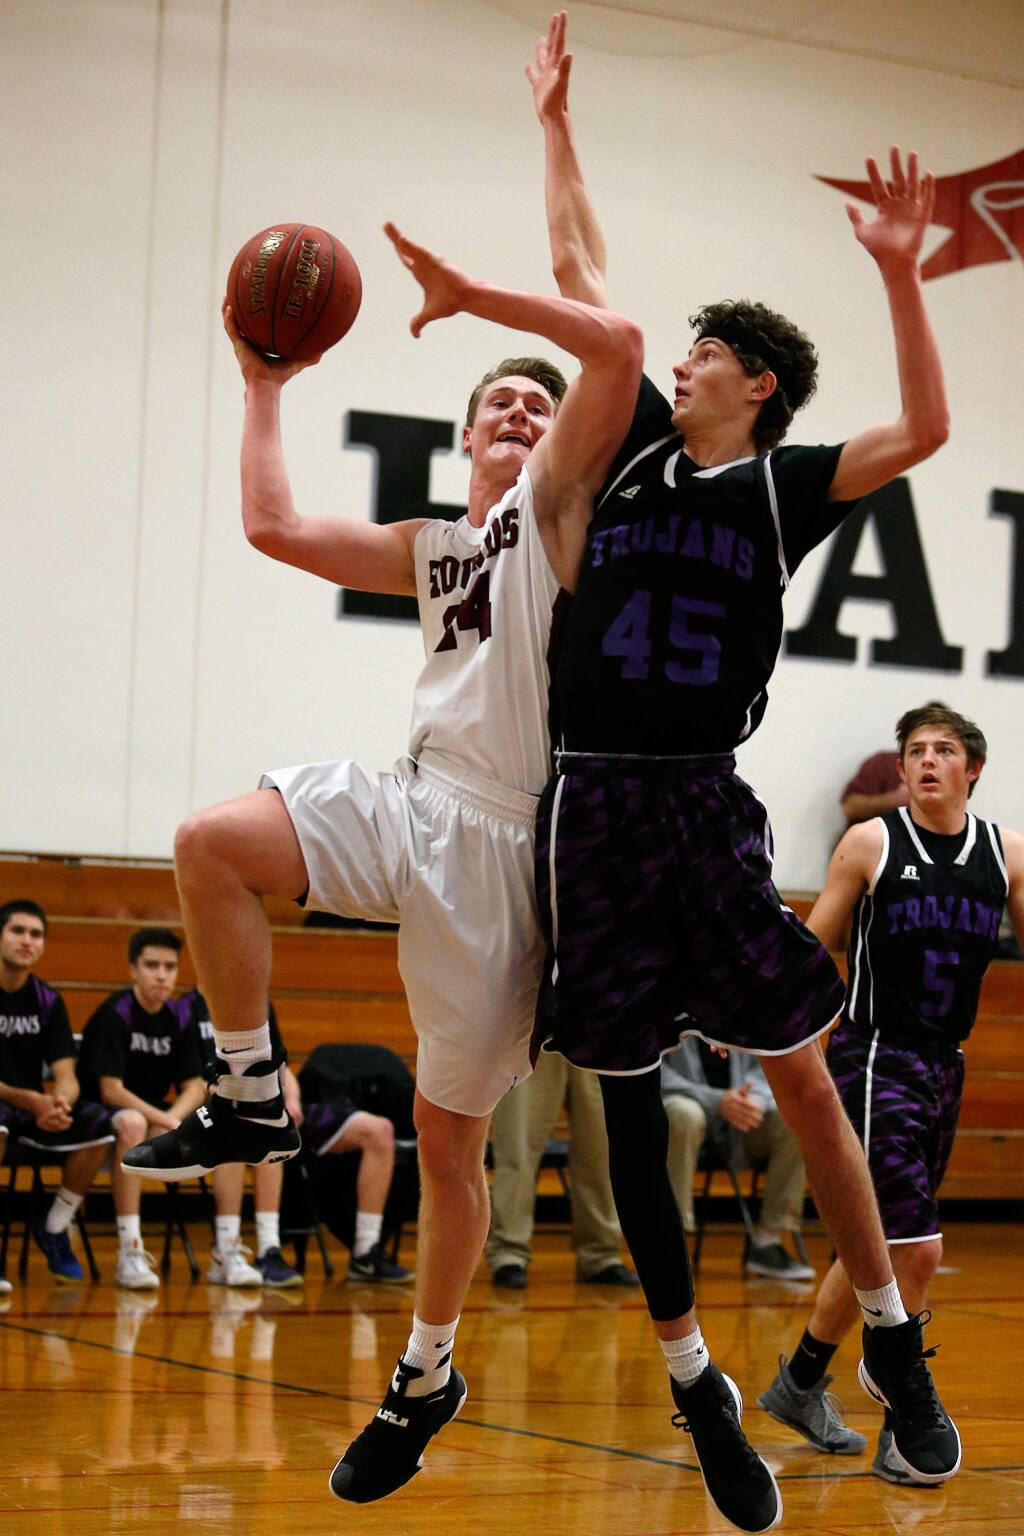 Healdsburg's Landon Courtman (24), left, goes for a shot while guarded by Petaluma's Joey Potts (45) during the first half of a boys varsity basketball game between Petaluma and Healdsburg high schools in Healdsburg, California on Tuesday, January 3, 2017. (Alvin Jornada / The Press Democrat)